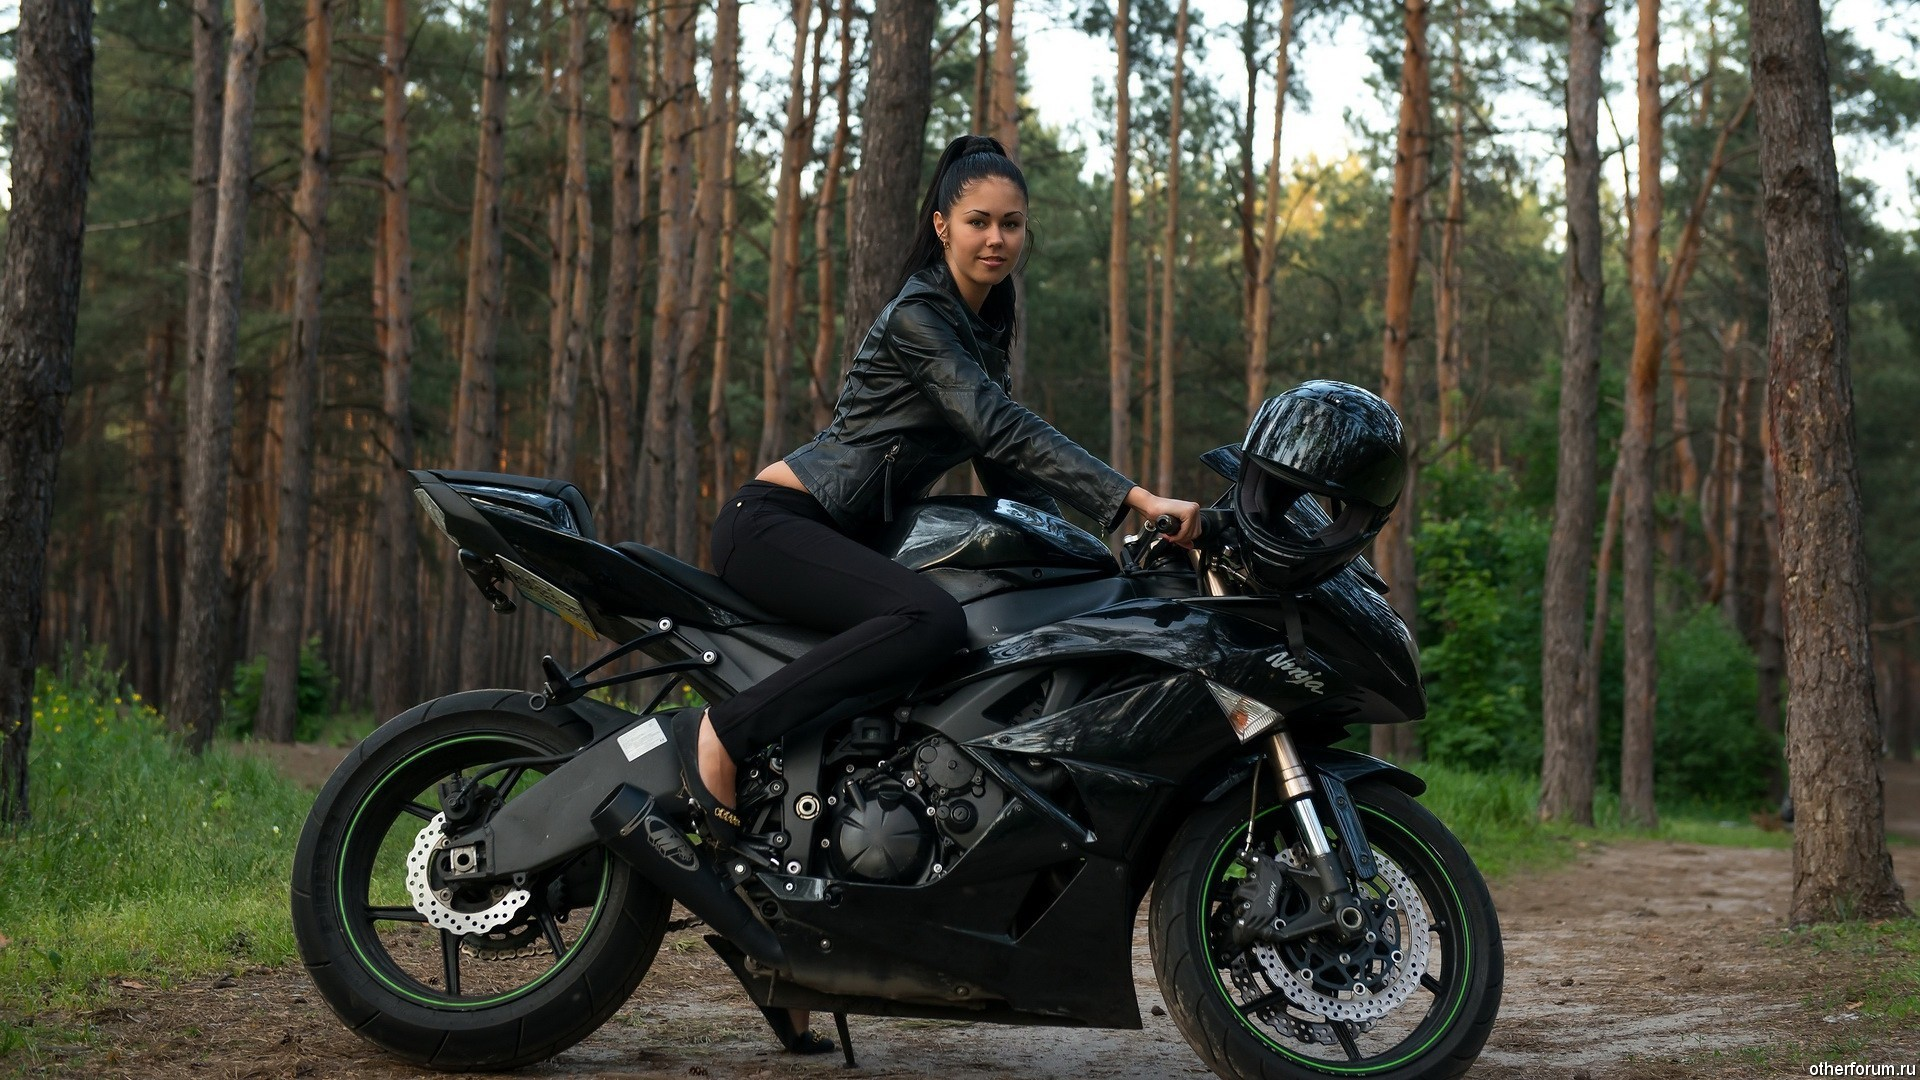 Women and Motorcycles Wallpaper.  Motocycles___Motorcycles_and_girls_Women_Kawasaki_Ninja_motorcycle .